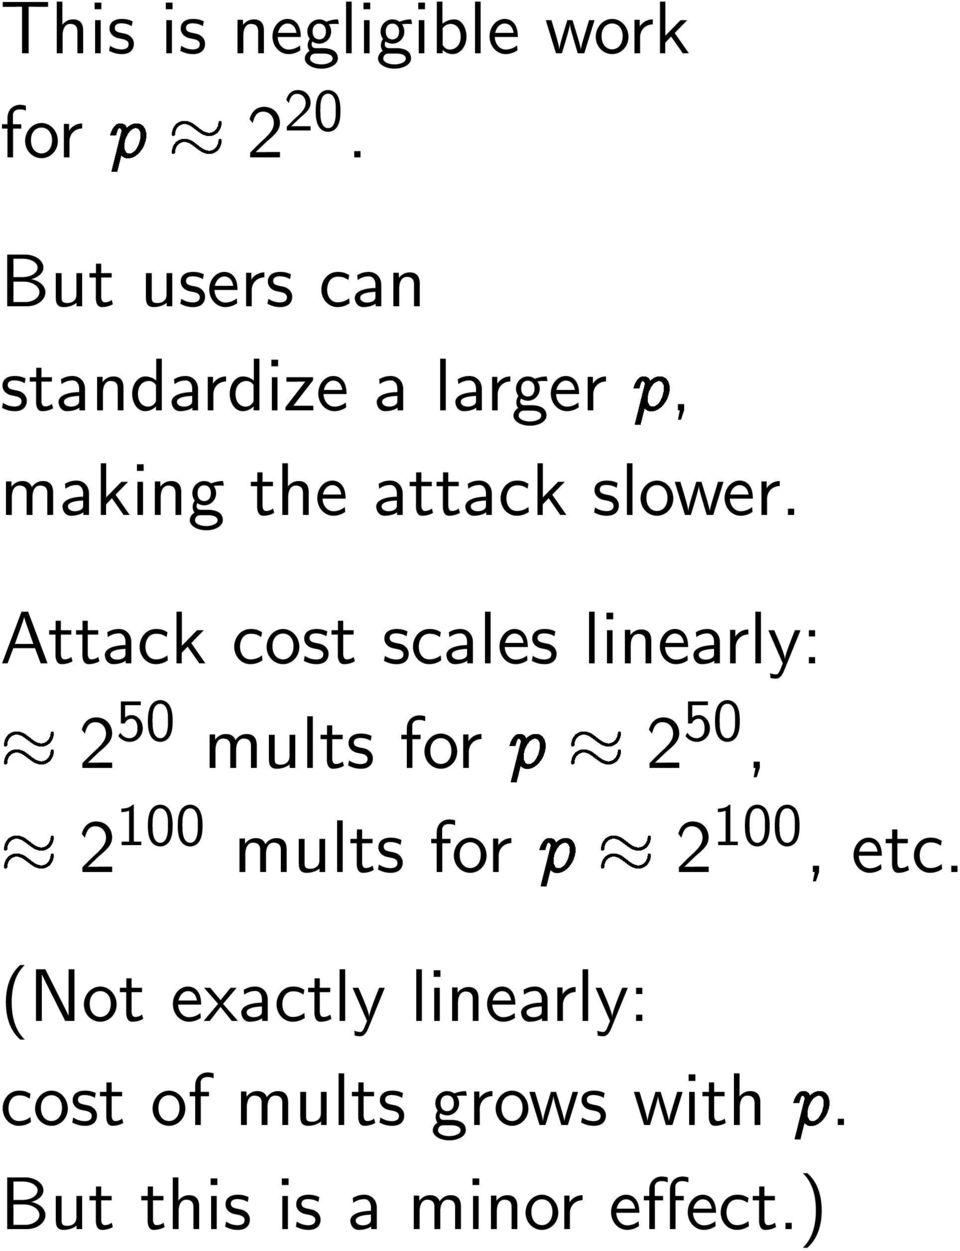 Attack cost scales linearly: 2 50 mults for Ô 2 50, 2 100 mults